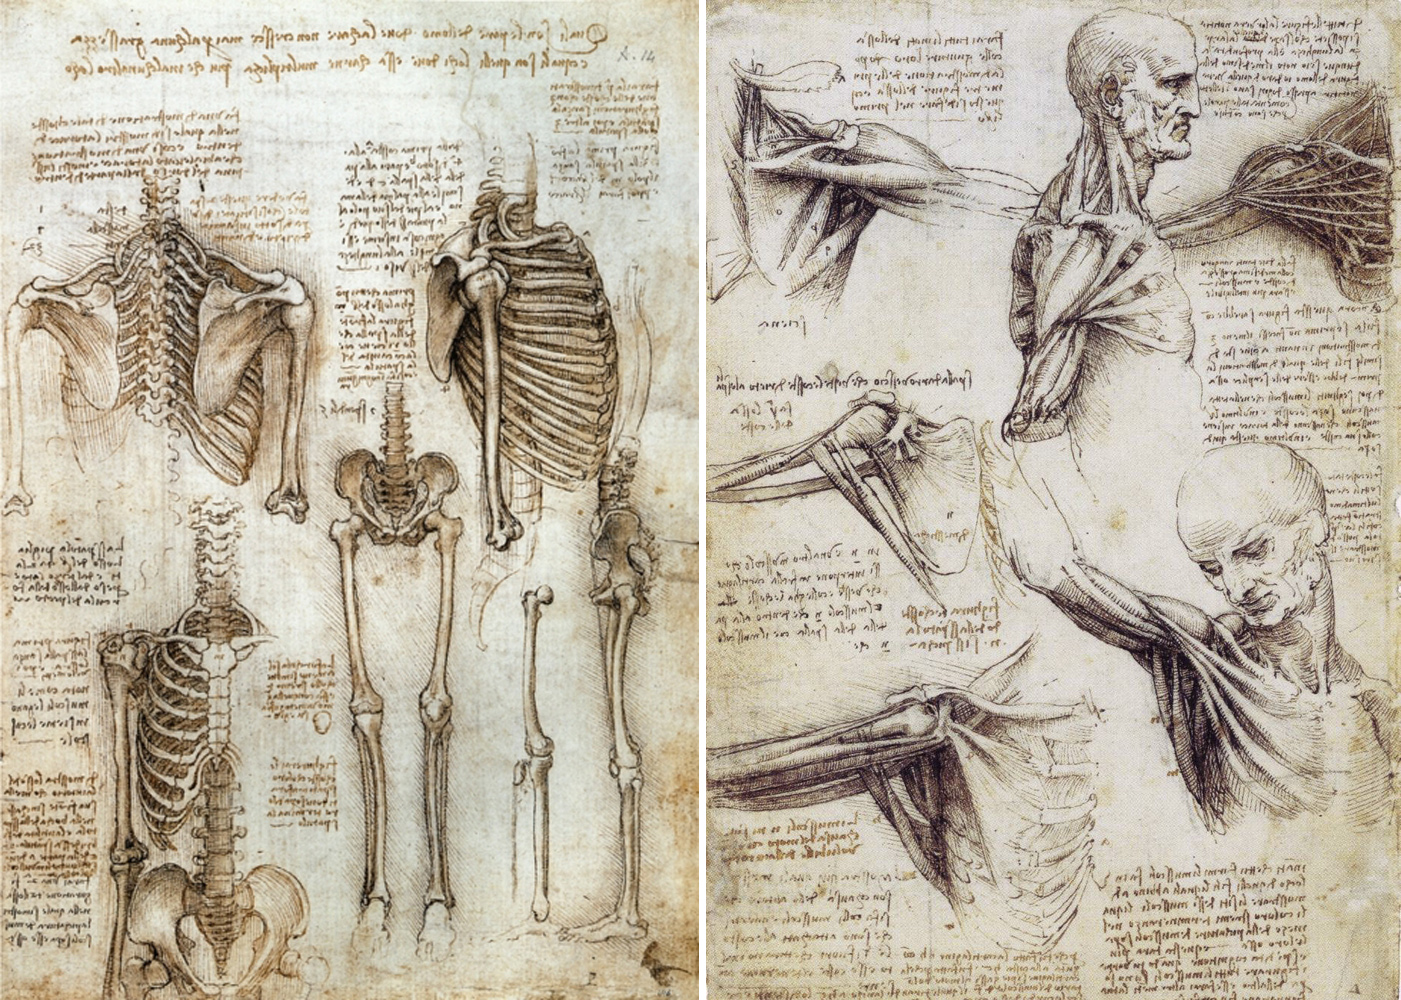 Drawn sleleton da vinci Human drawing skeleton da Human